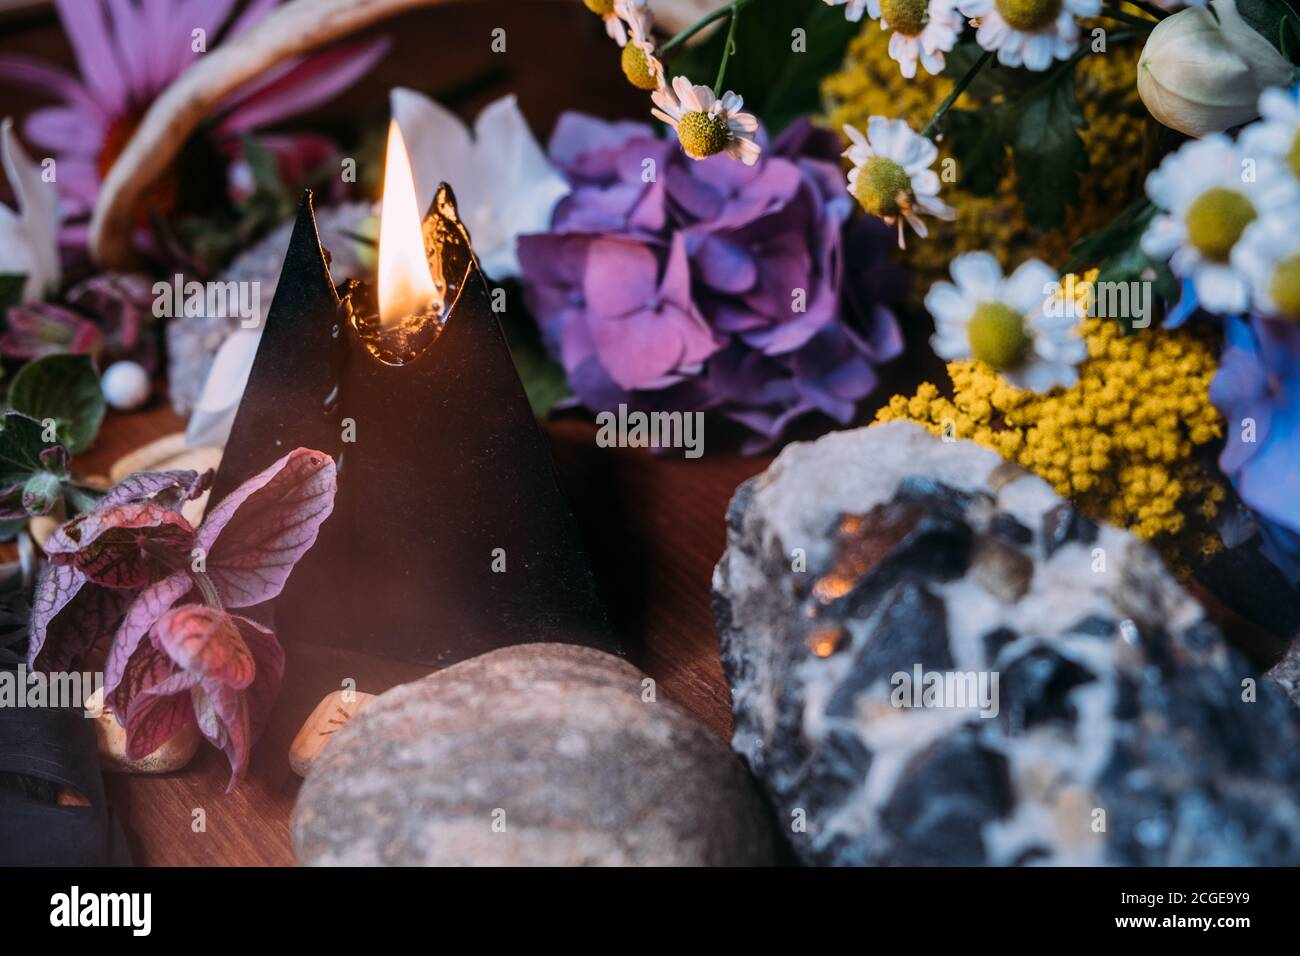 Still life with burning black candle, stones and herbs background. Black magic ritual with occult, evil and esoteric symbols. Halloween or divination Stock Photo